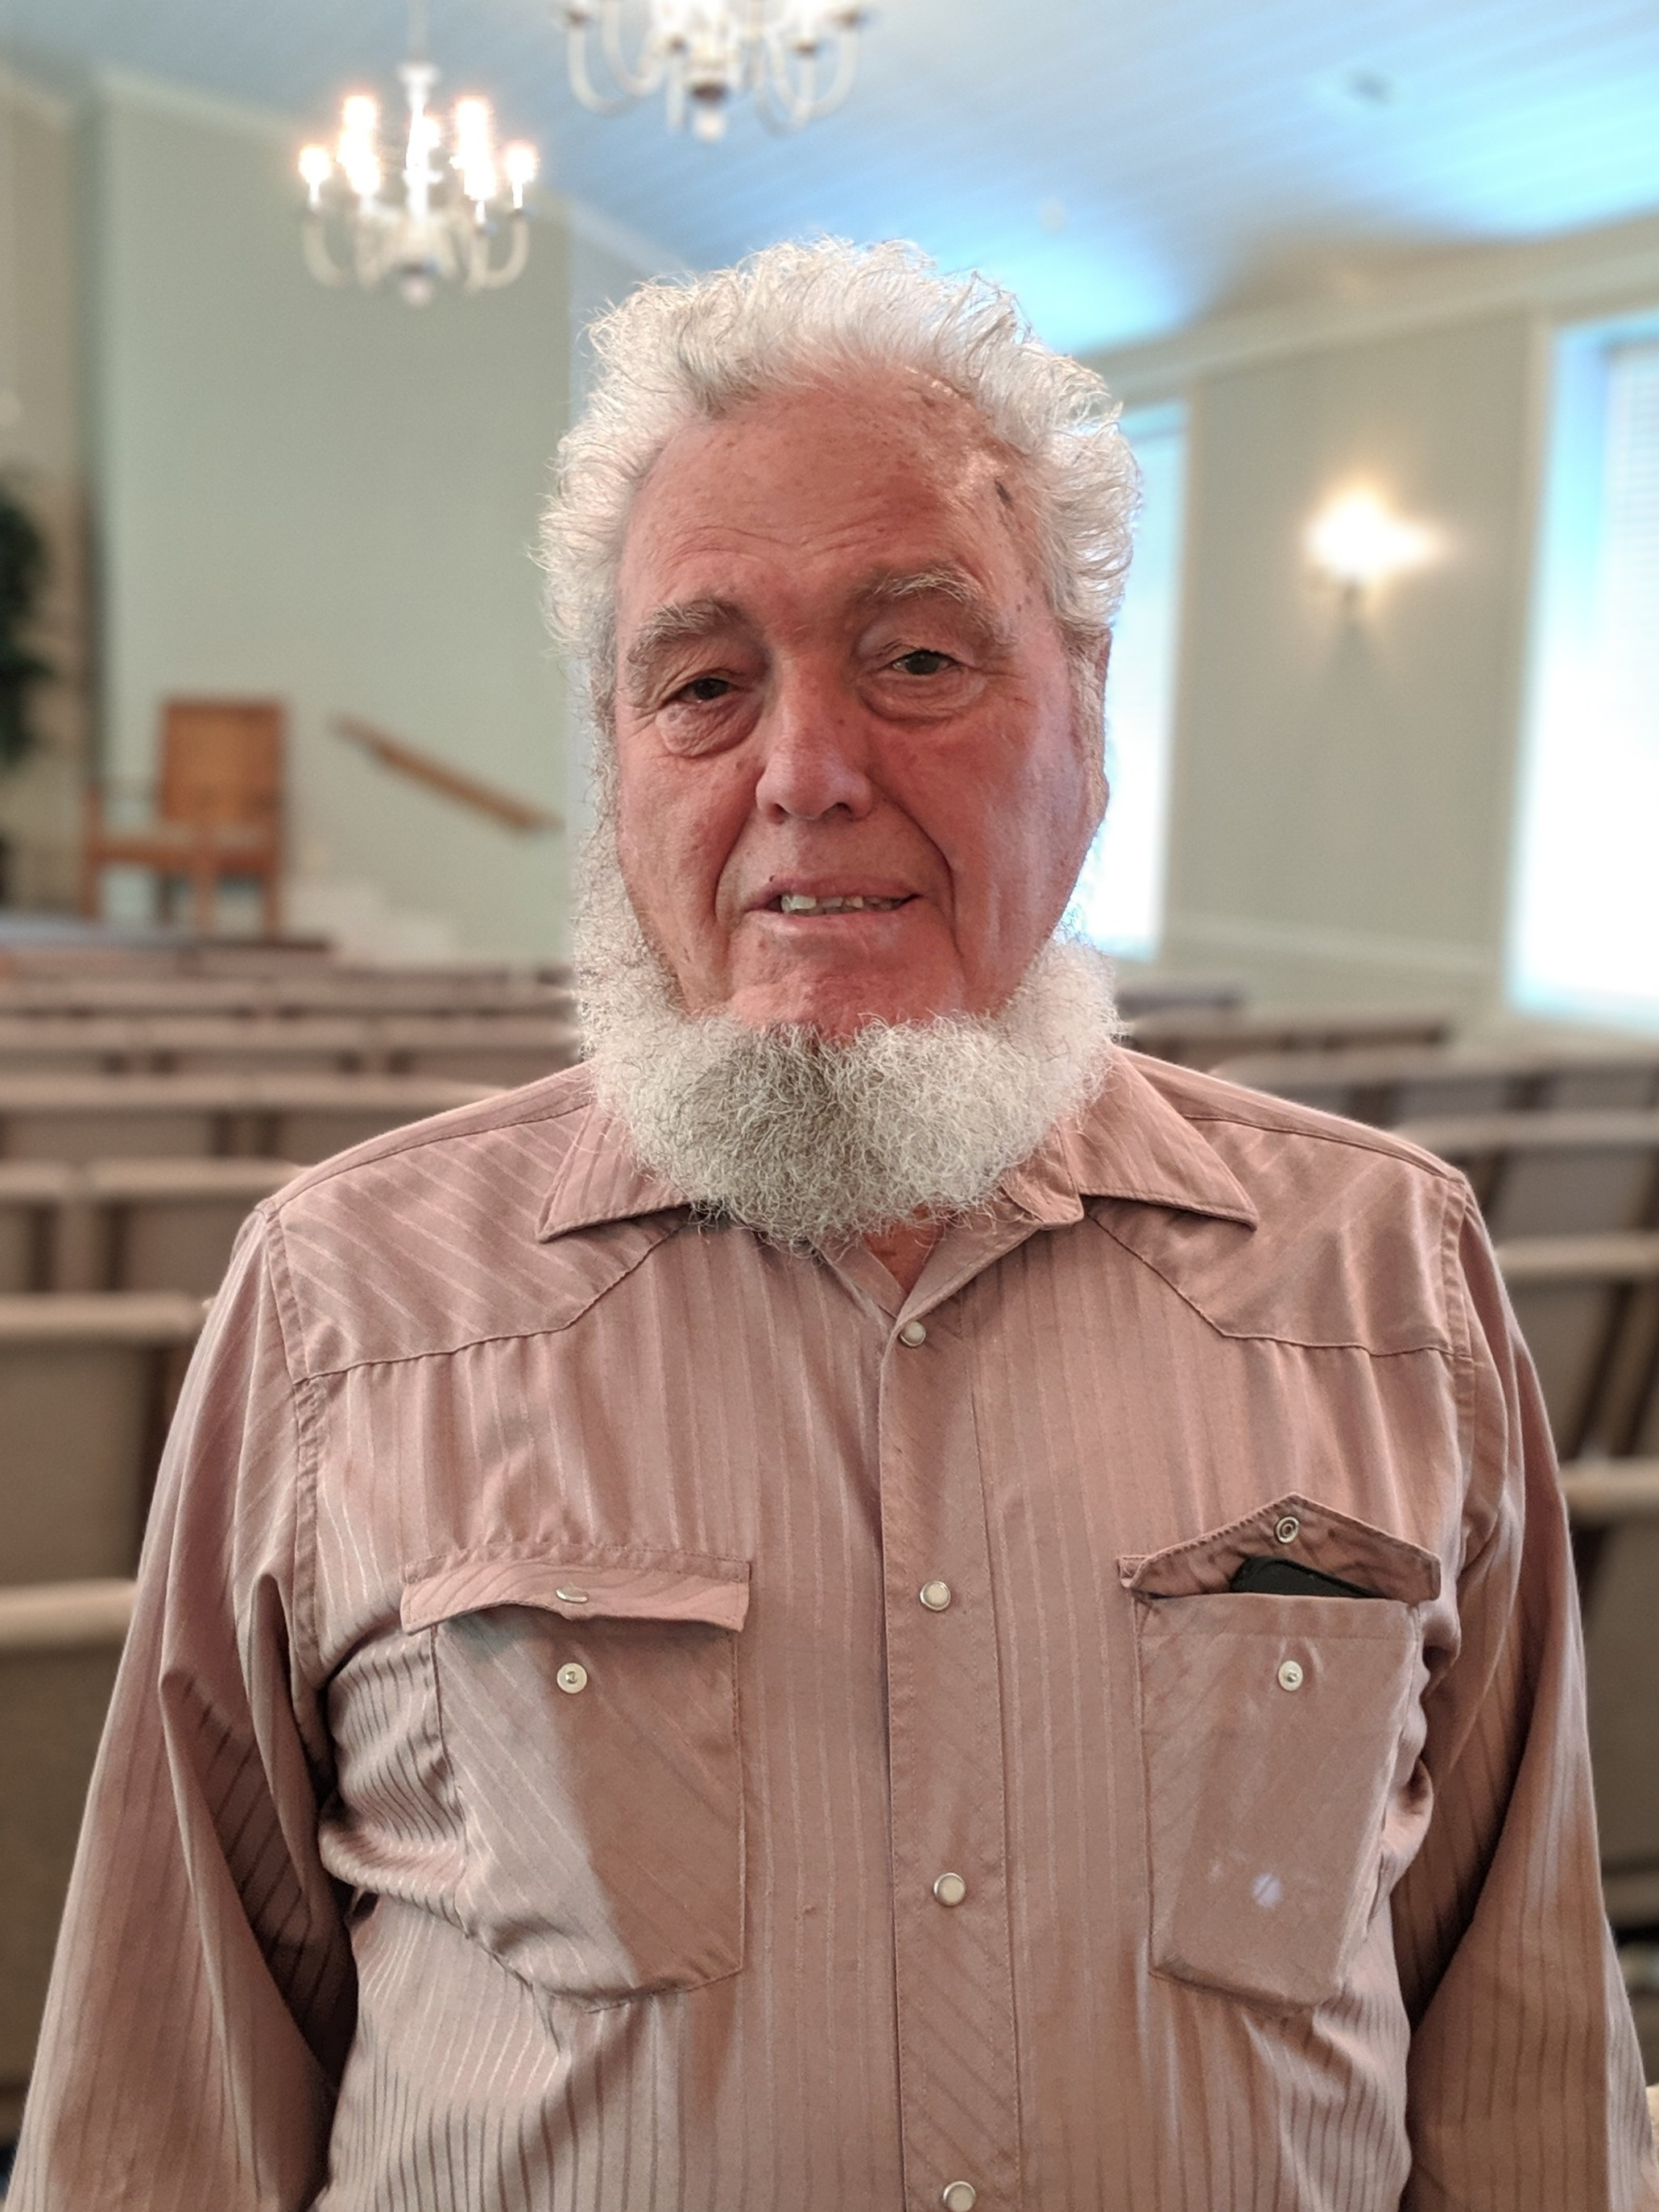 Jesse Doyle, Deacon  Jesse has been a business owner in Huntsville for over 30 years and a founding member of Heritage. He and his wife Jan spend much time serving in the kingdom of God with a heart for the elderly.